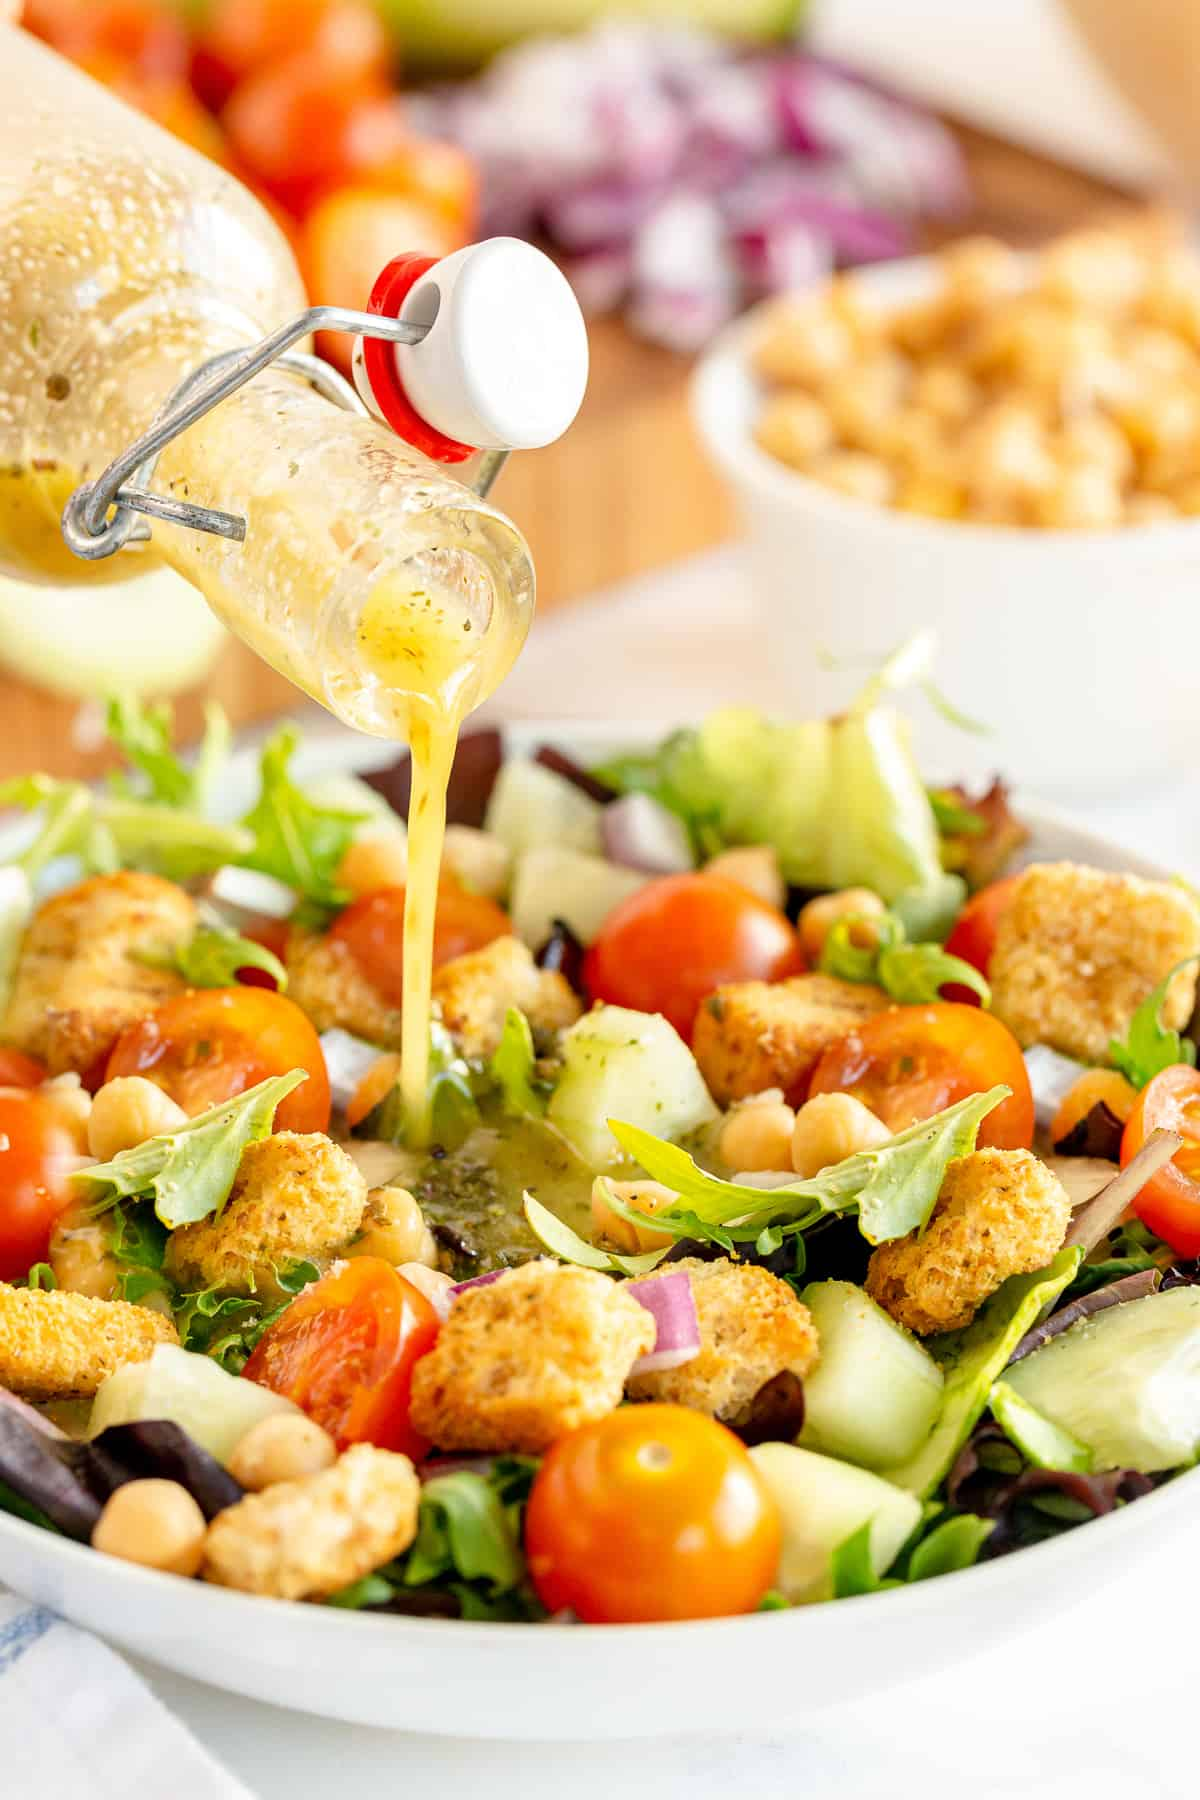 Homemade Italian Salad Dressing pours on to a colorful salad.